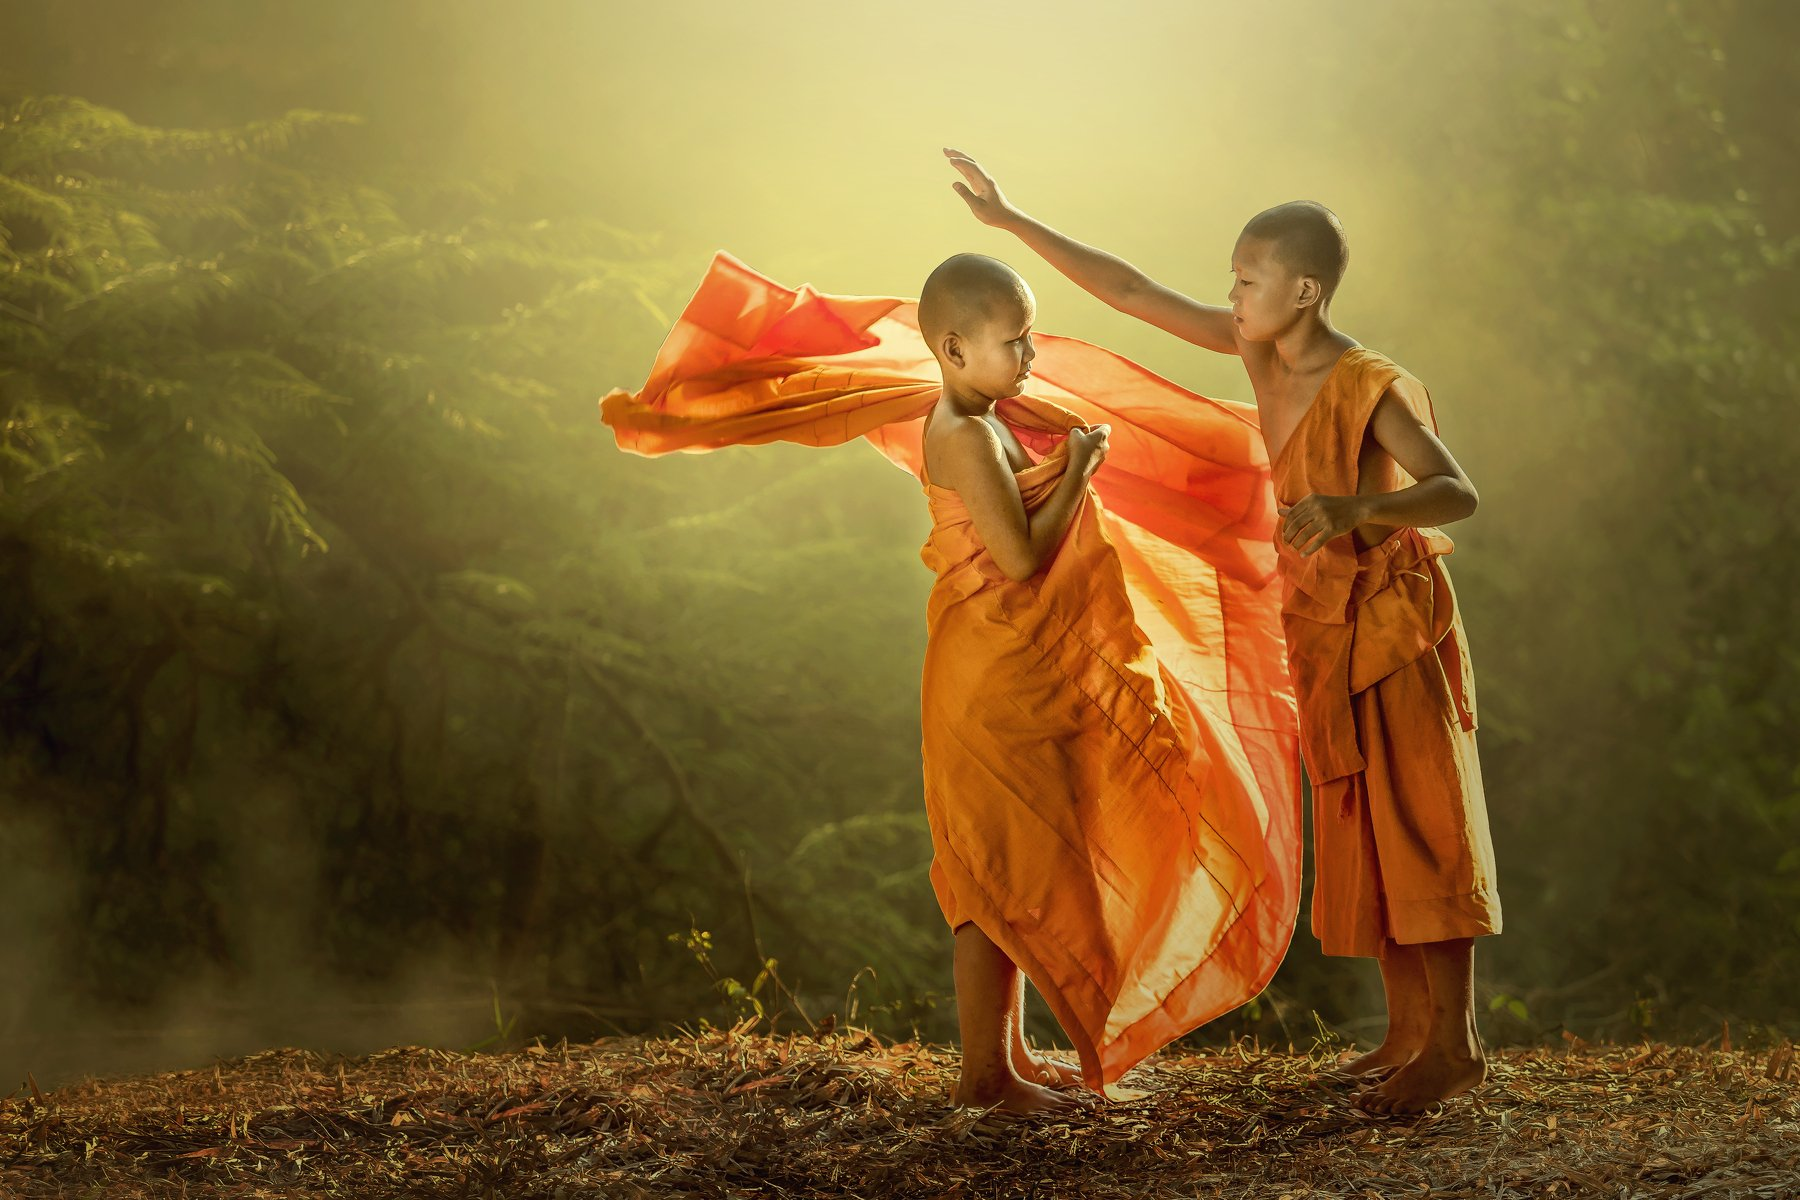 2015, Asia, Buddhism, Color Image, Getting Dressed, Holding, Horizontal, Leisure Activity, Monk - Religious Occupation, Nepal, Novice Buddhist Monk, Orange Color, Outdoors, People, Photography, Shaved Head, Summer, Thai Culture, Thailand, Tropical Climate, Jakkree Thampitakkull